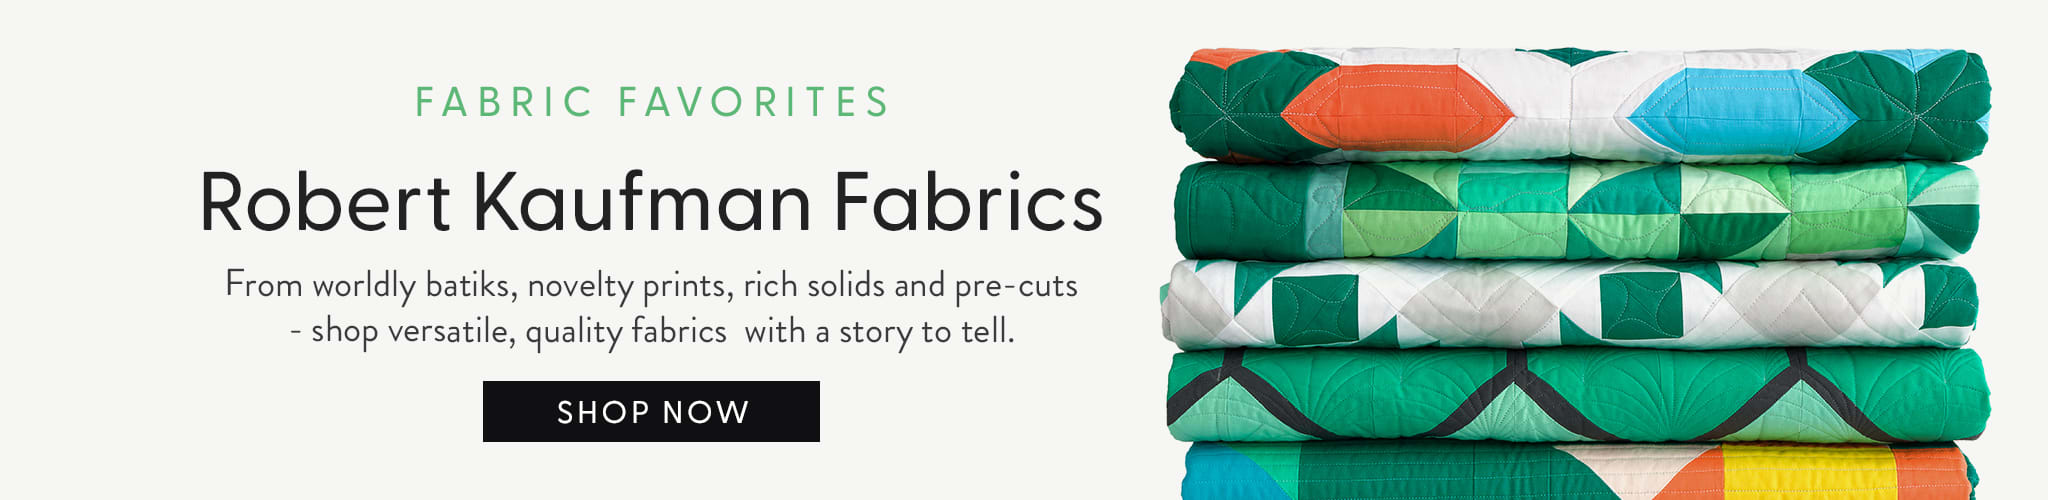 Fabric Favorites: Robert Kaufman Fabrics. From worldly batiks, novelty prints, rich solids and precuts- shop versatile, quality fabrics with a story to tell.